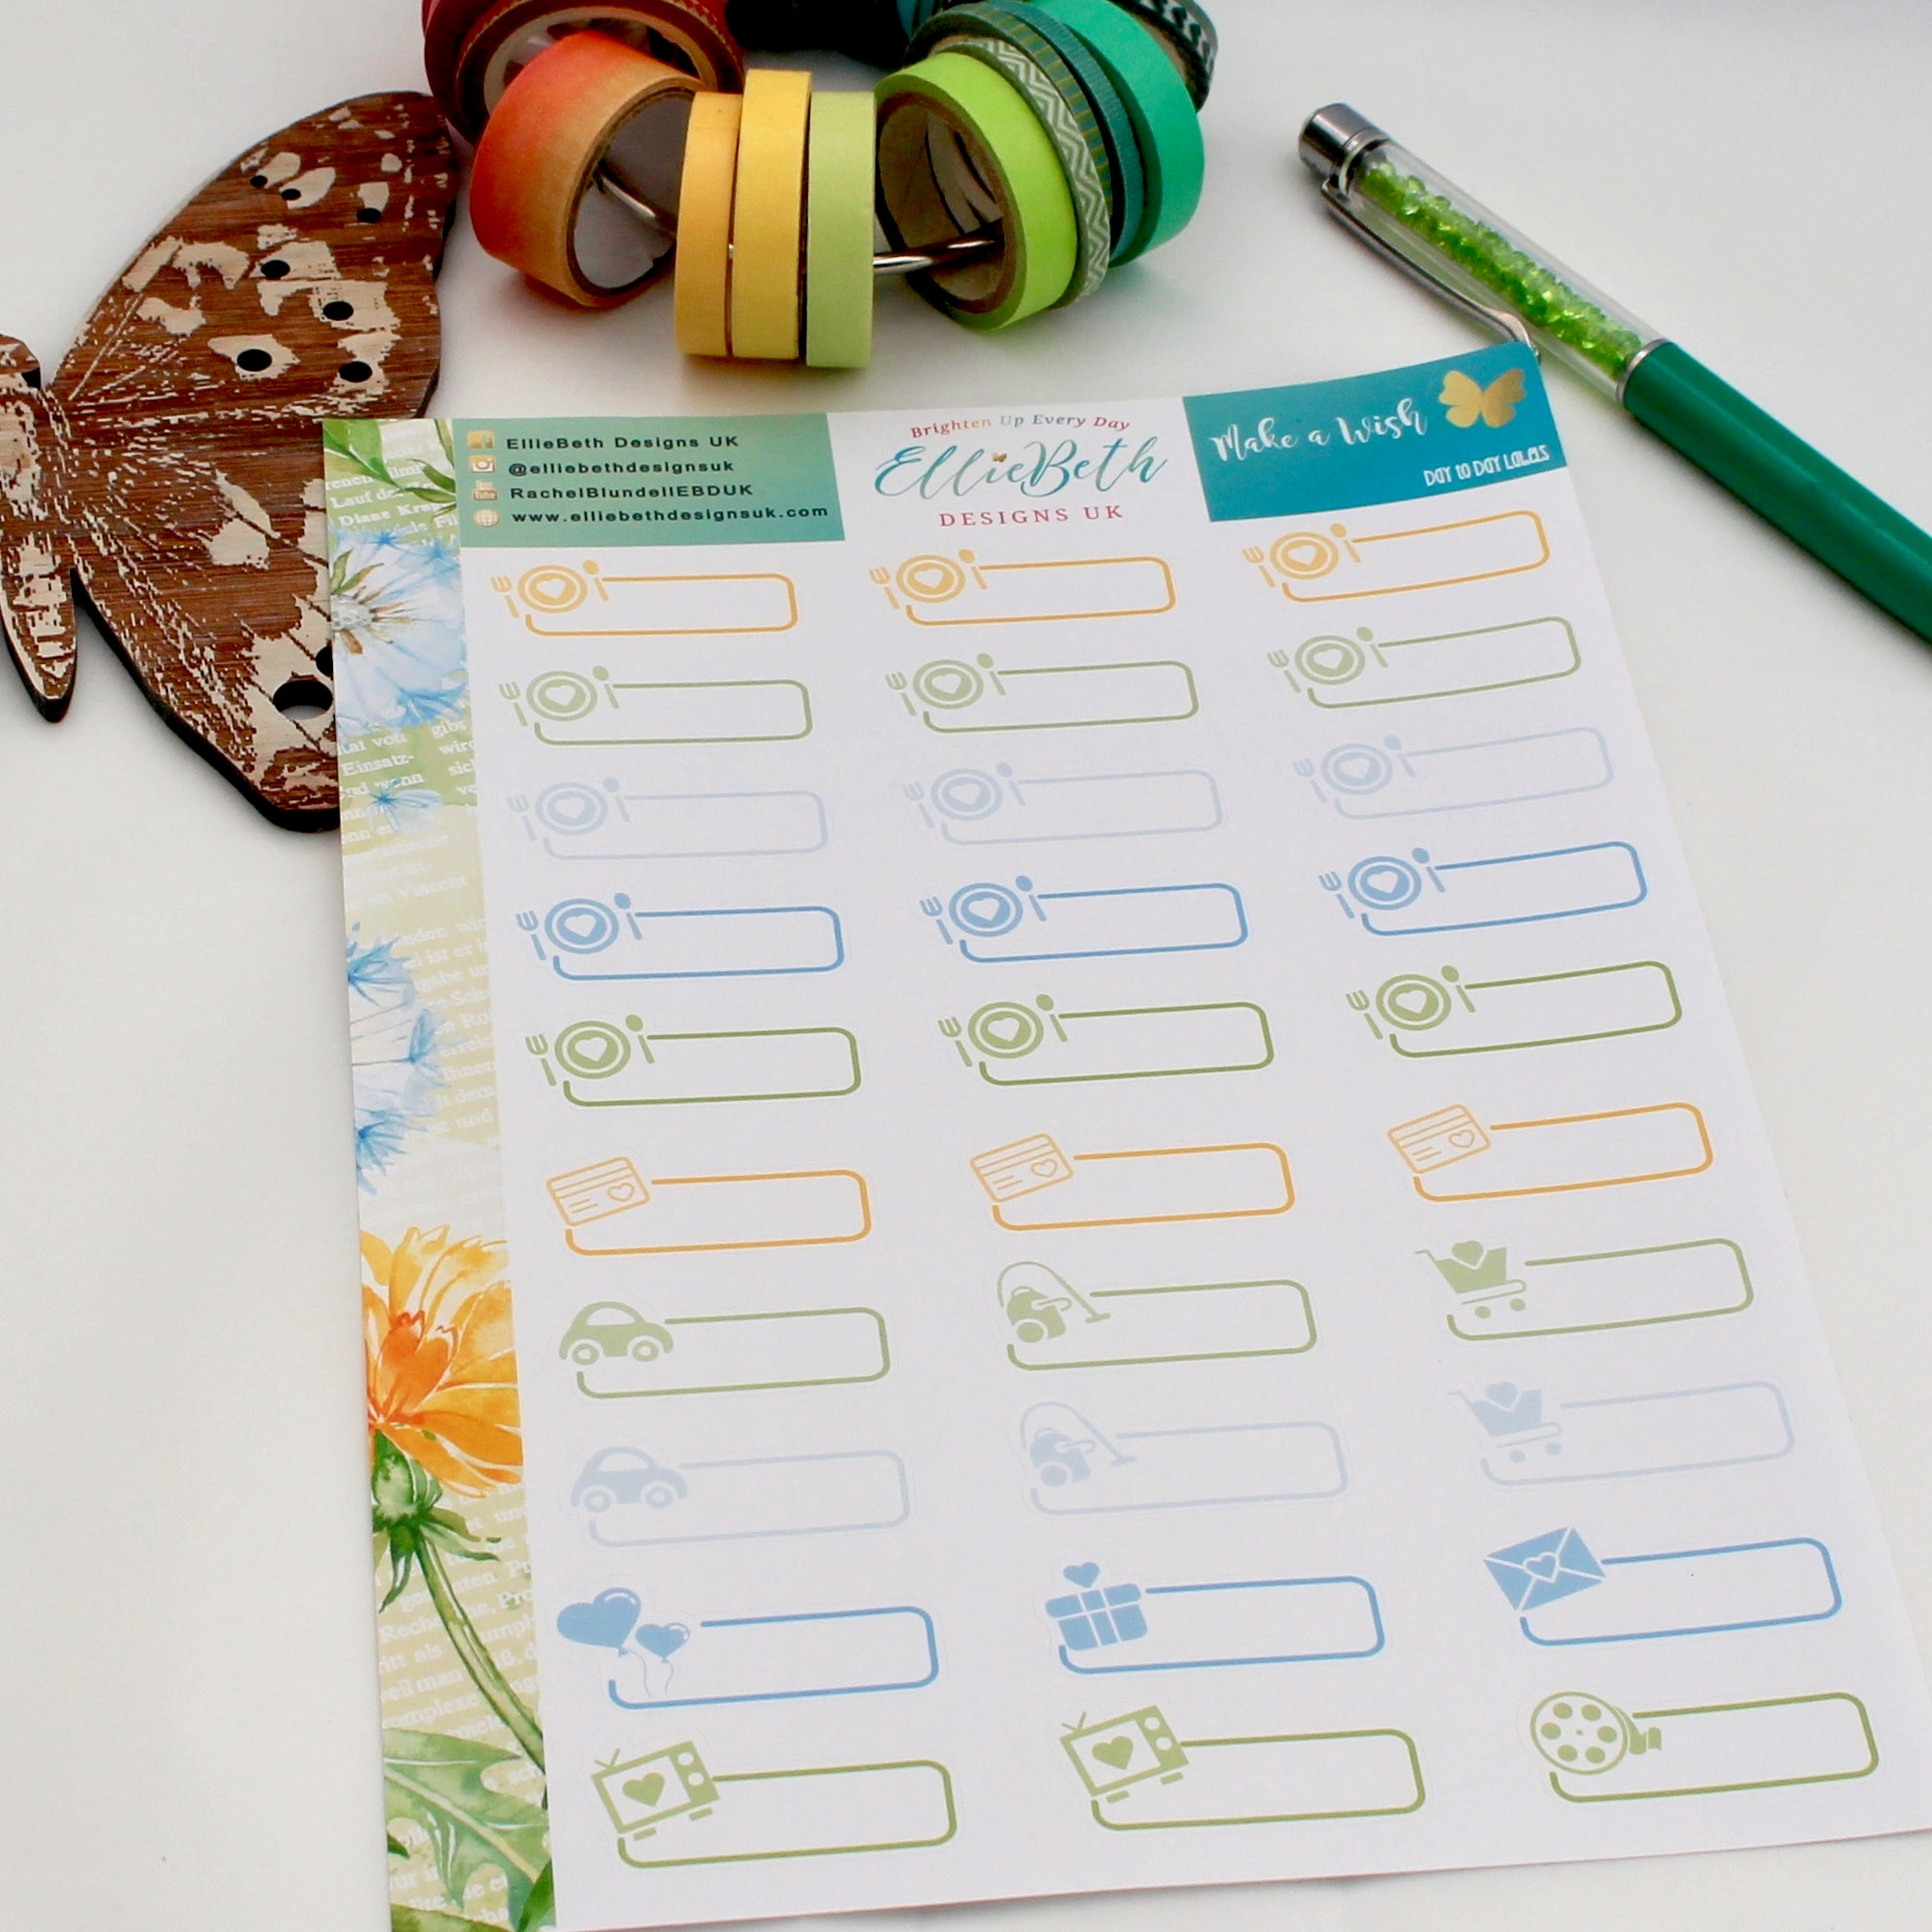 'Make a Wish'- Day to Day Labels - A5 binder ready planner stickers - EllieBeth Designs UK